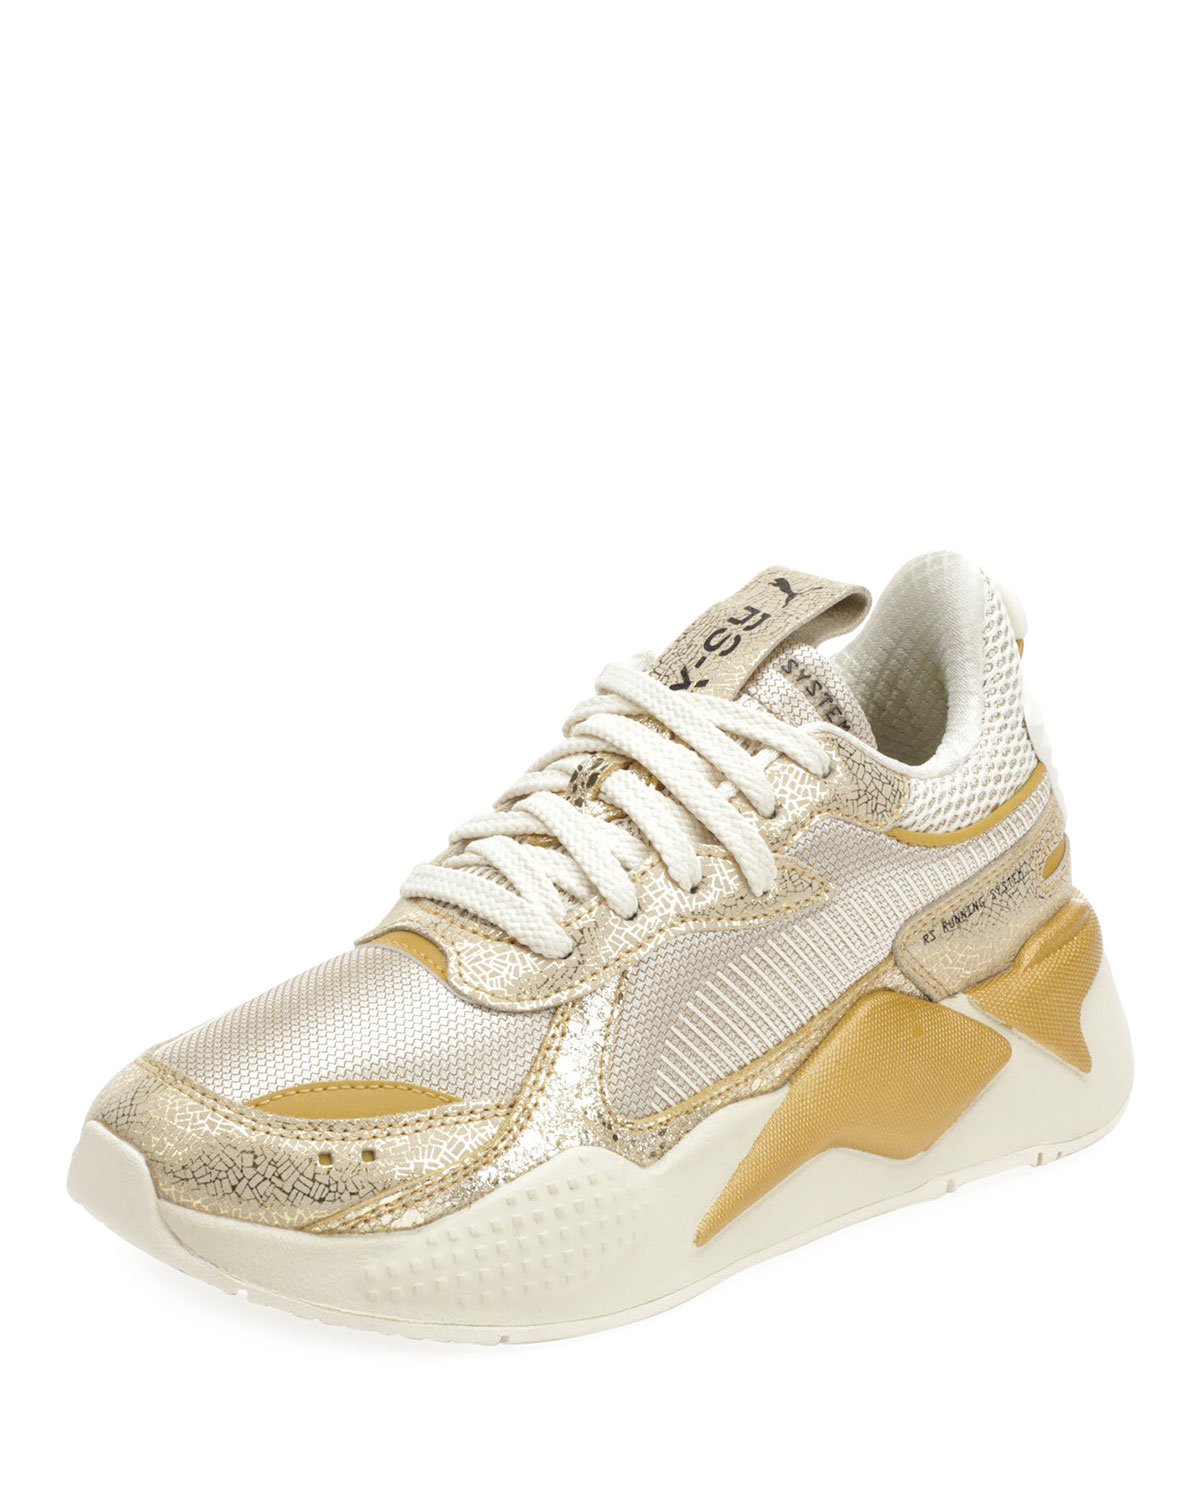 RS X Winter Glimmer Sneakers